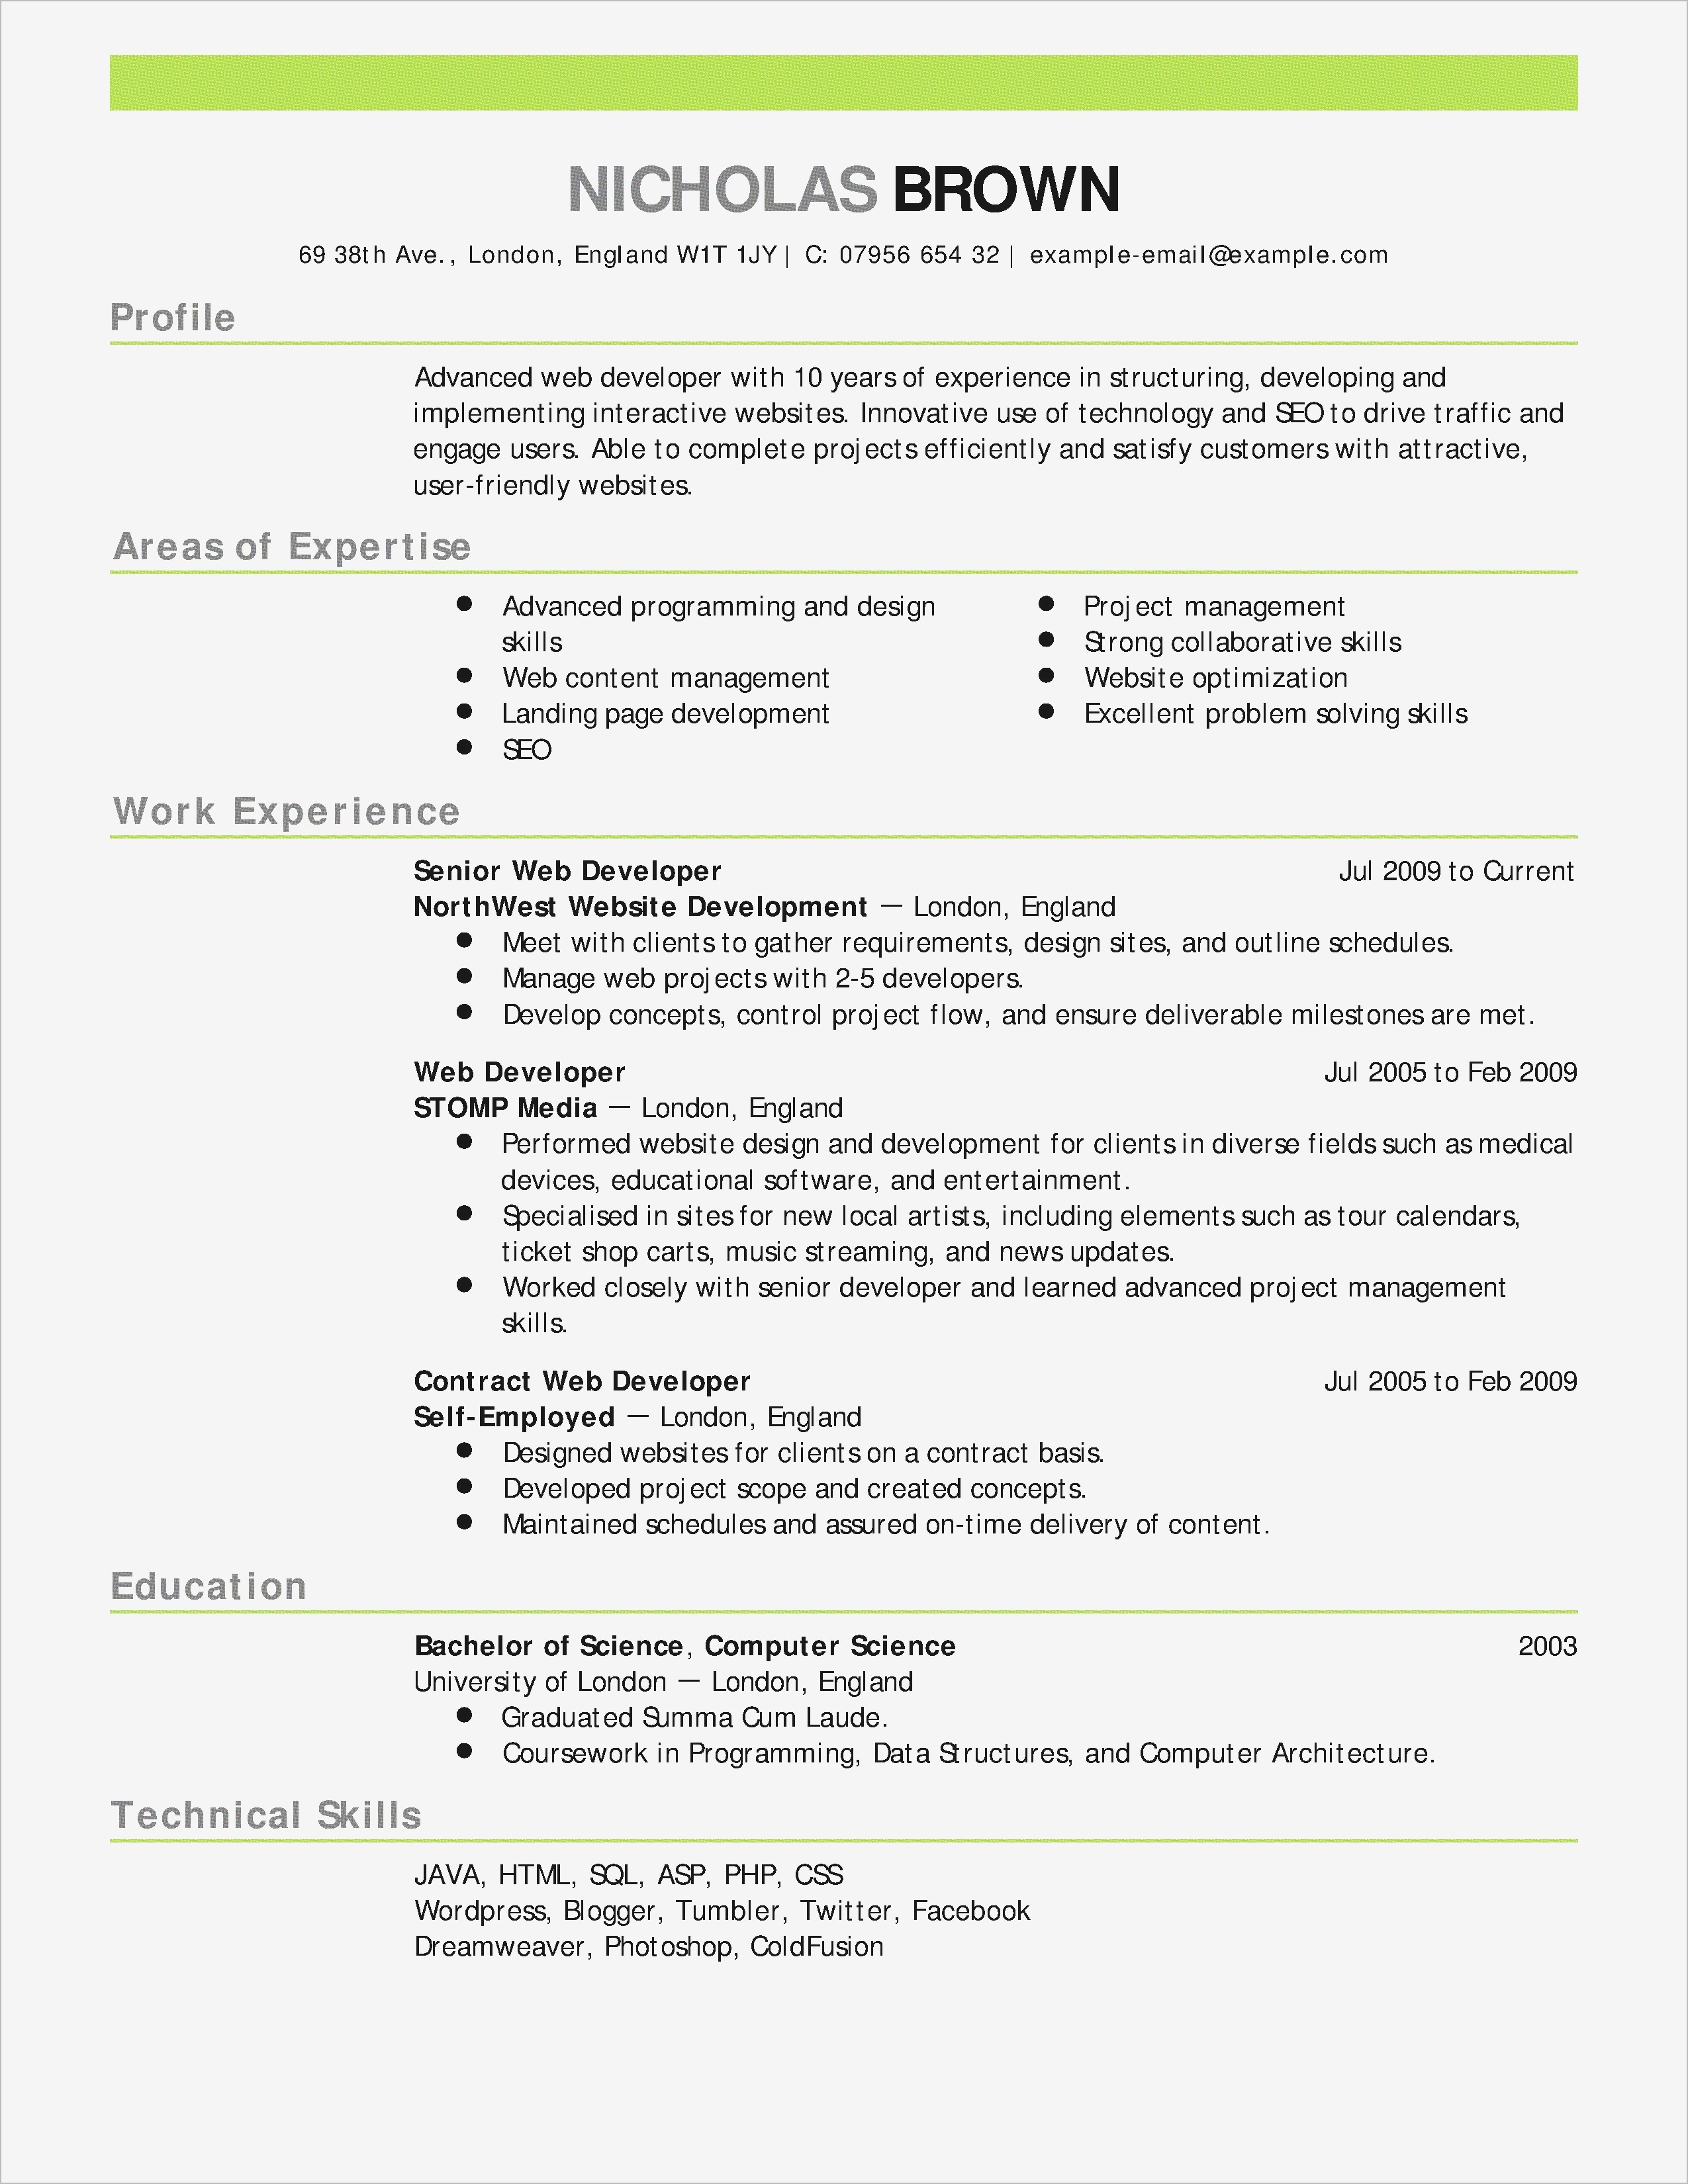 Maintenance Cover Letter Template - Maintenance Experience Resume Reference Elegant Cover Letter Writing